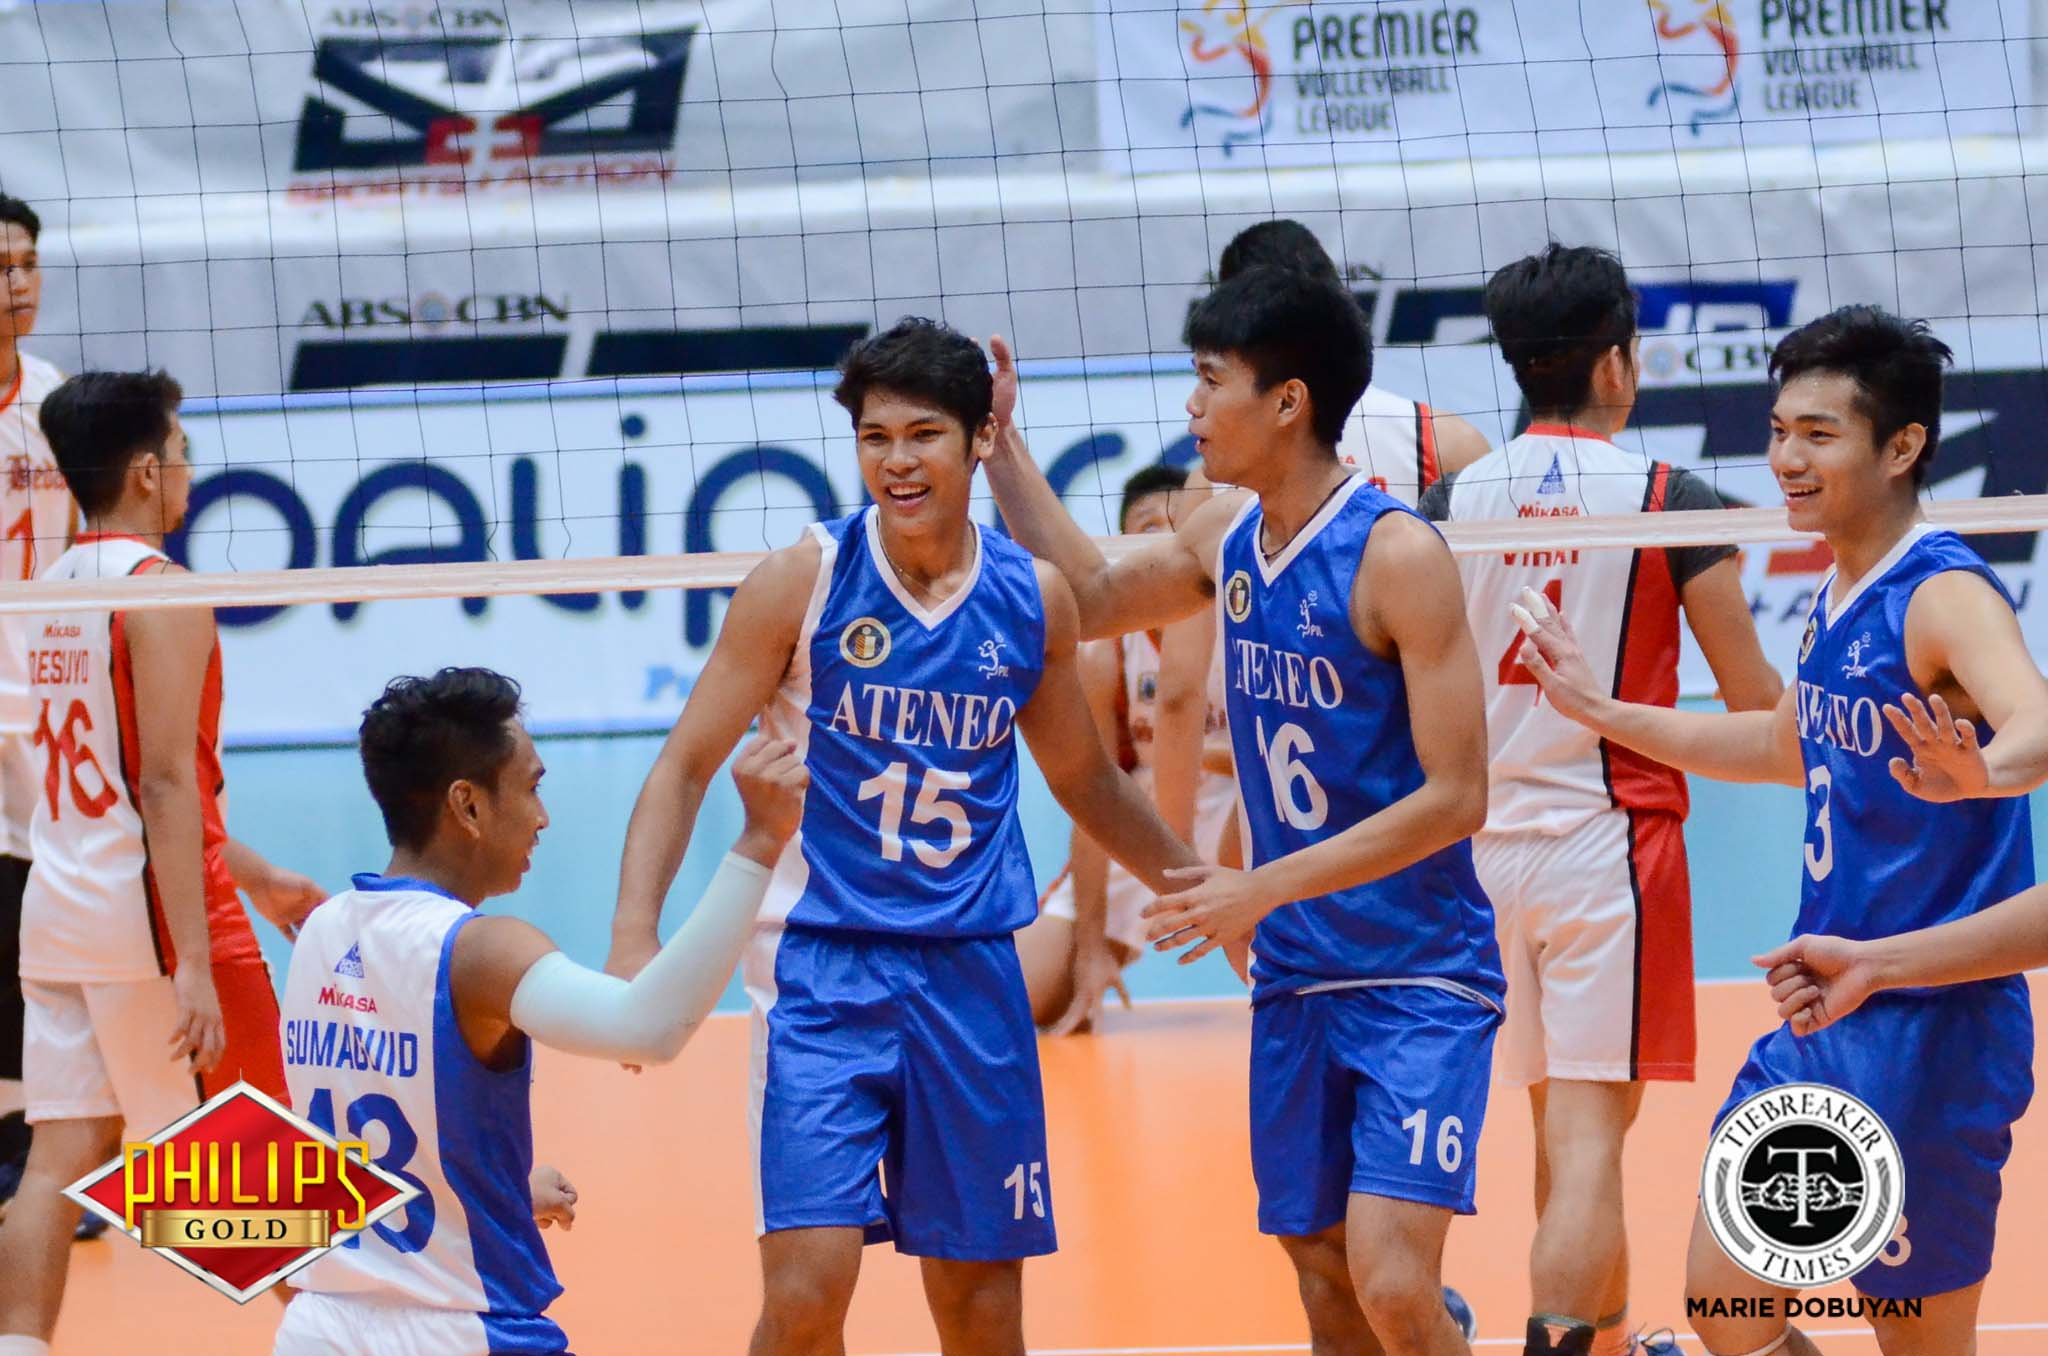 Philippine Sports News - Tiebreaker Times Marck Espejo, Ateneo continue to dominate ADMU CSB News PVL Volleyball  Saint Benilde Men's Volleyball Oliver Almadro Marck Espejo Manuel Sumanguid Janjan Rivera Ish Polvorosa Isaah Arda Ateneo Men's Volleyball Arnold Laniog 2017 PVL Season 2017 PVL Men's Collegiate Conference